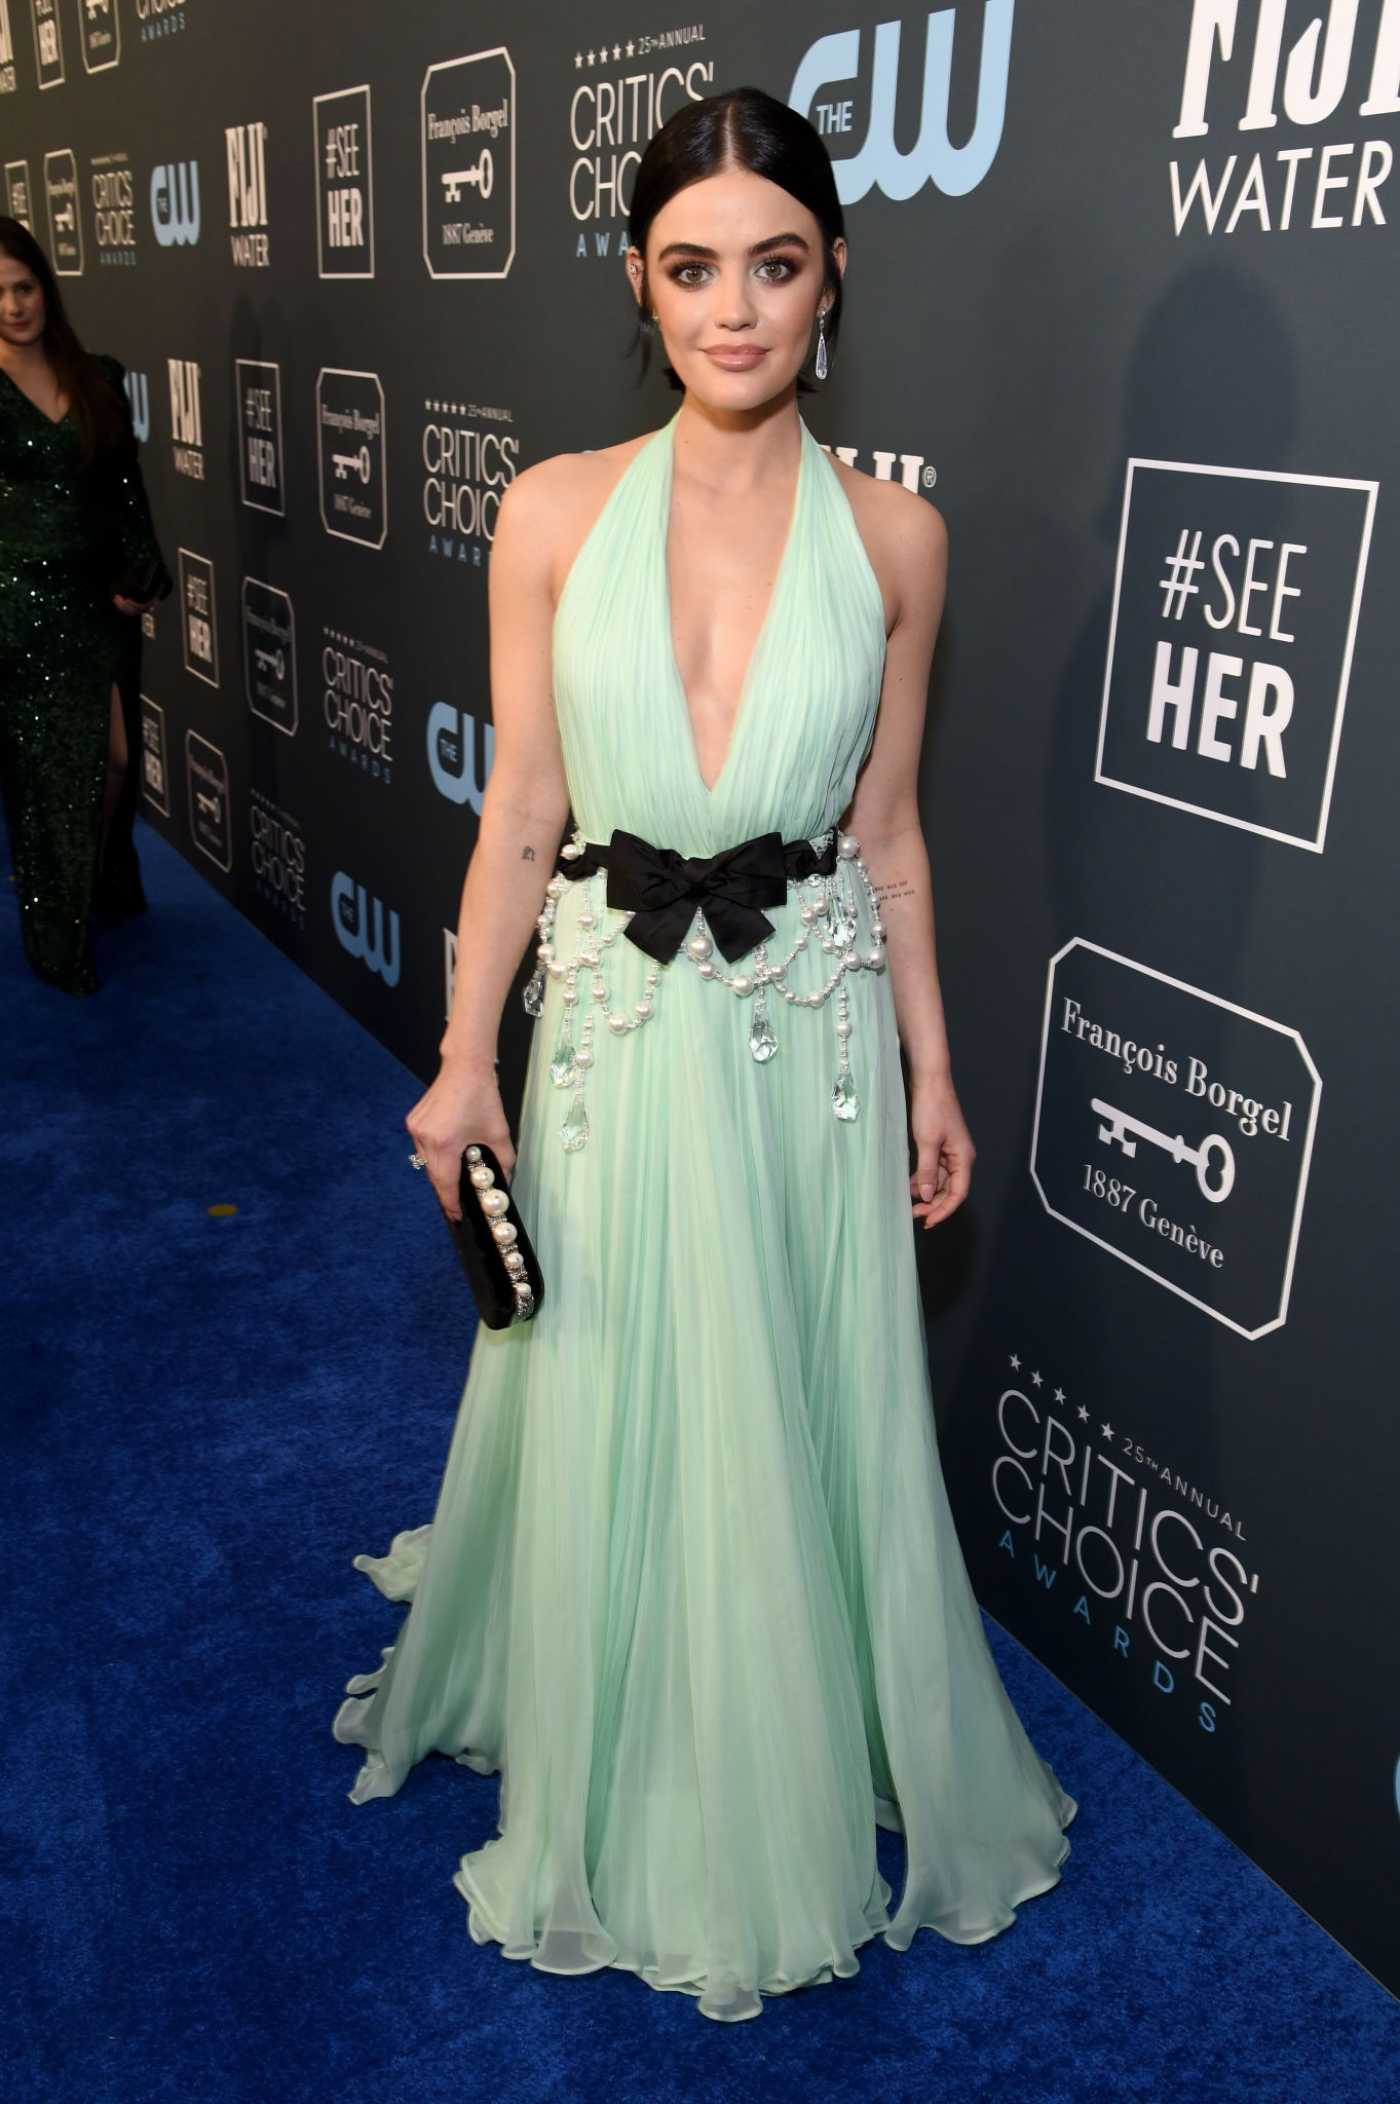 Lucy Hale Attends the 25th Annual Critics Choice Awards in Santa Monica 01/12/2020